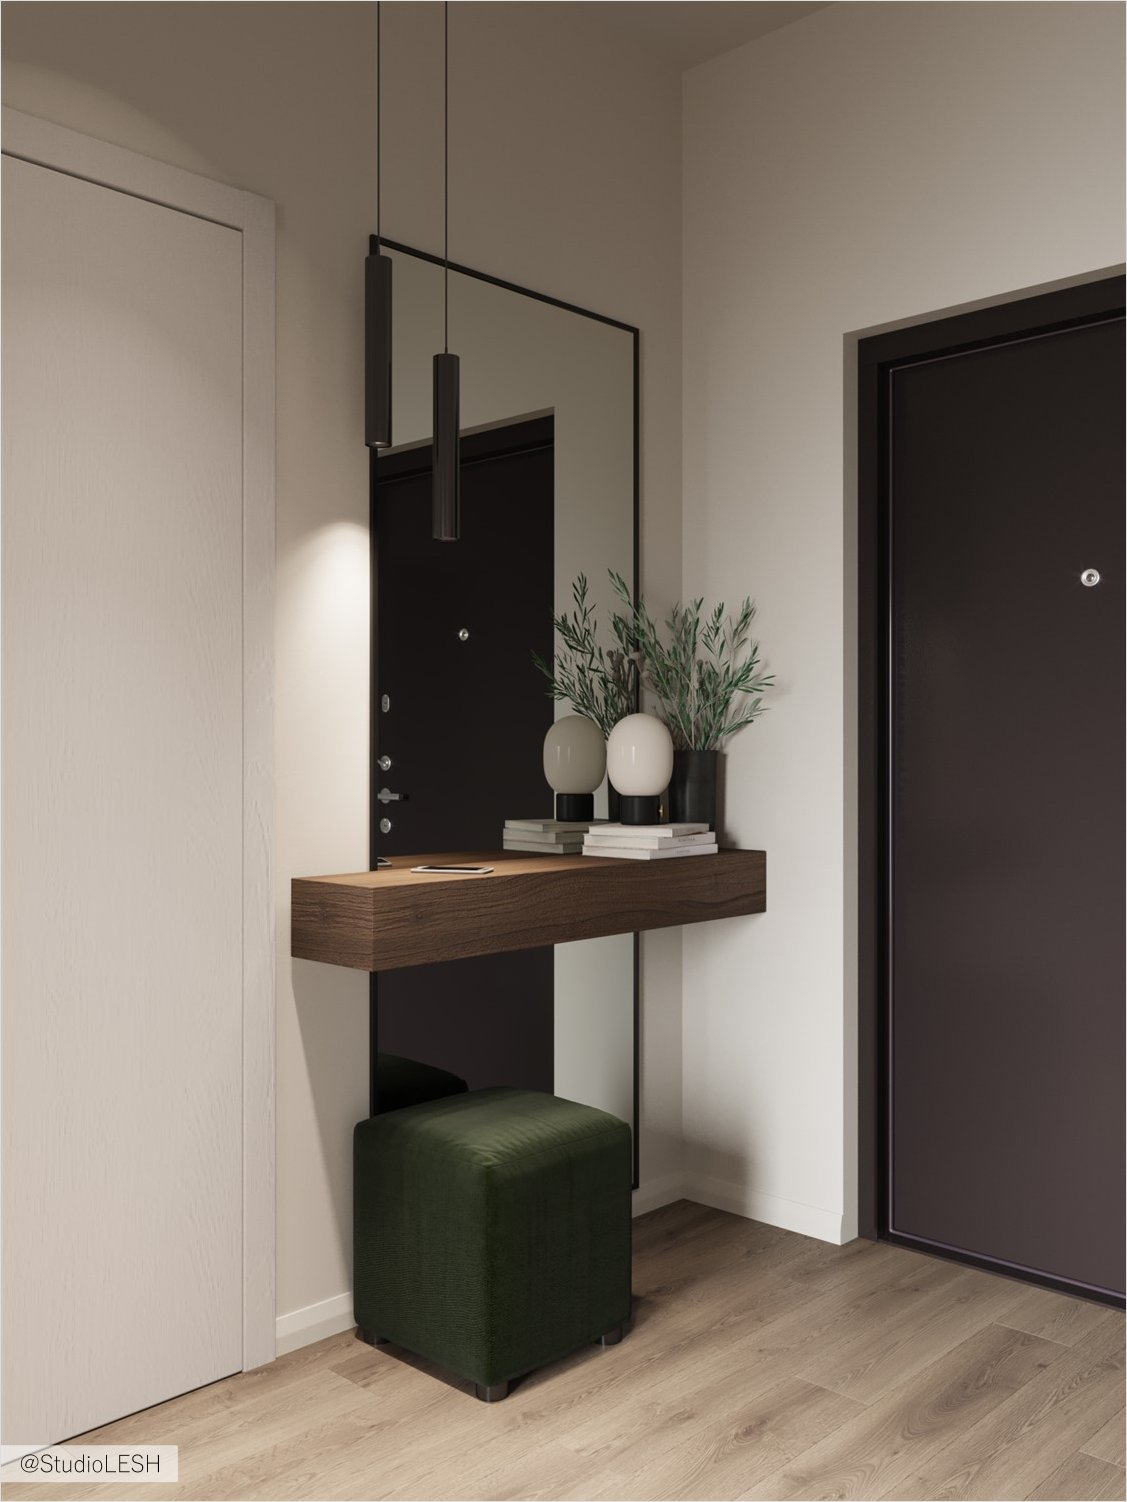 Floor mirror in the hallway and focus on the green ottoman